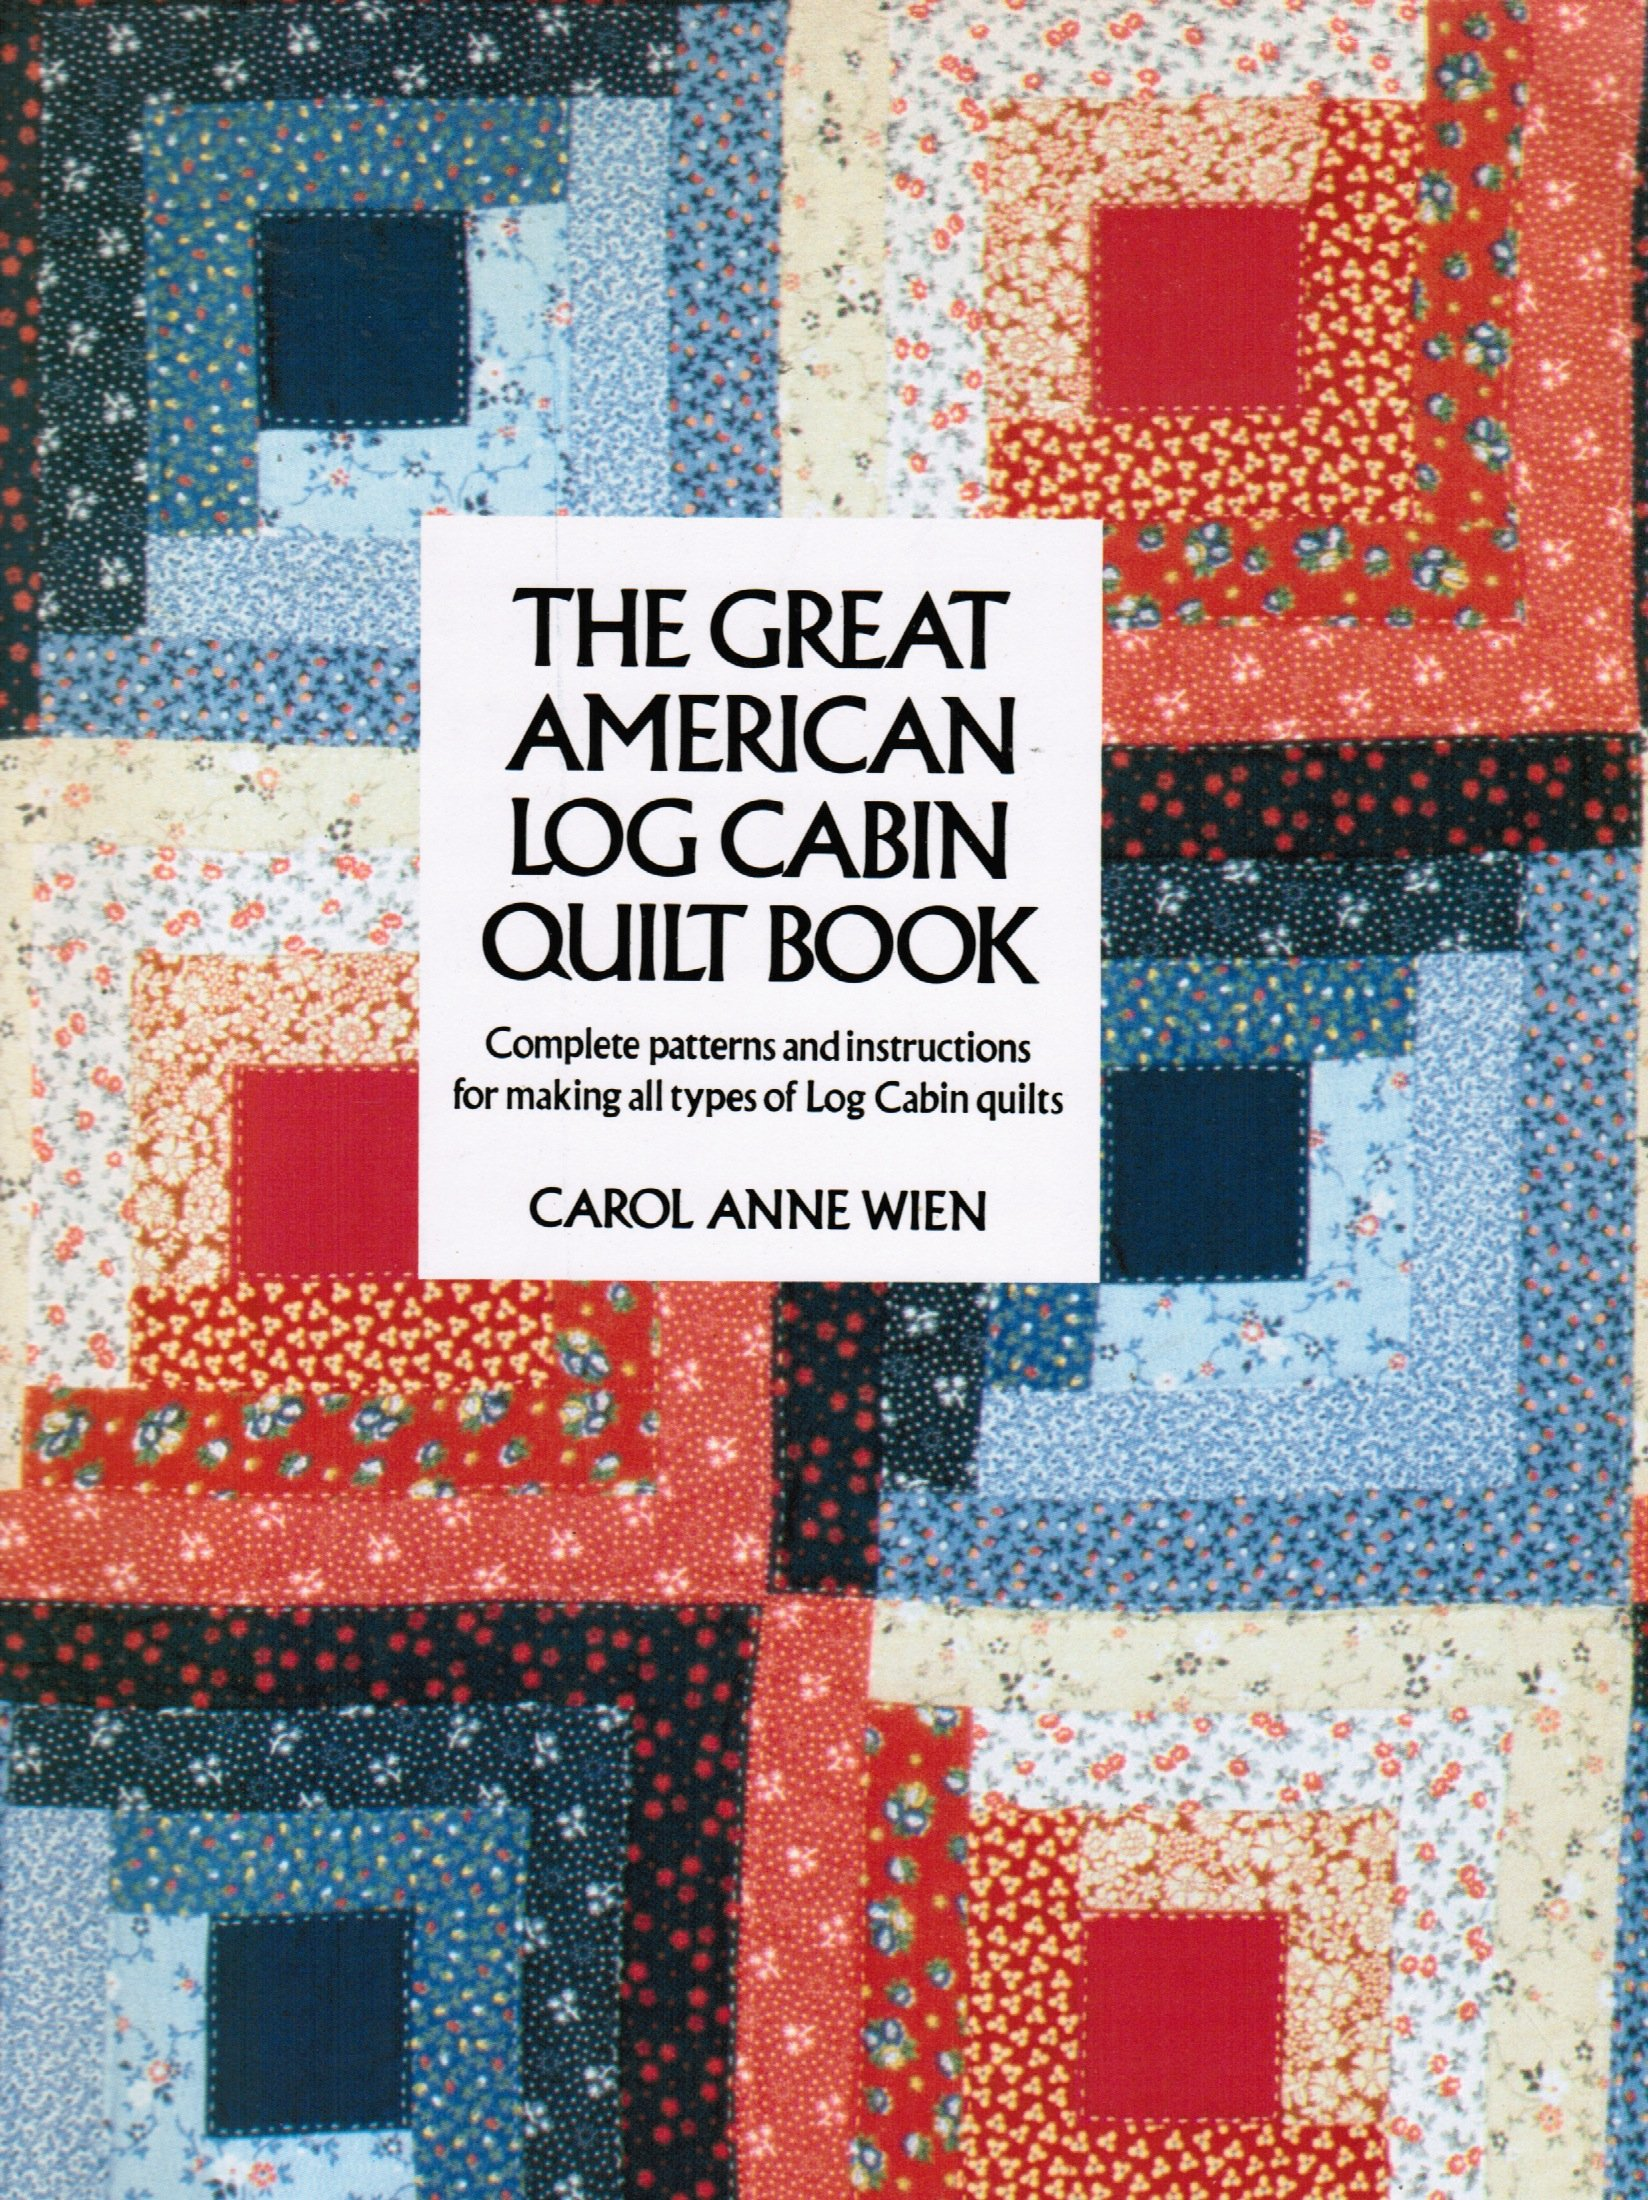 The Great American Log Cabin Quilt Book Complete Patterns And Instructions For Making All Types Of Log Cabin Quilts Wien Carol Anne 9780525932055 Amazon Com Books